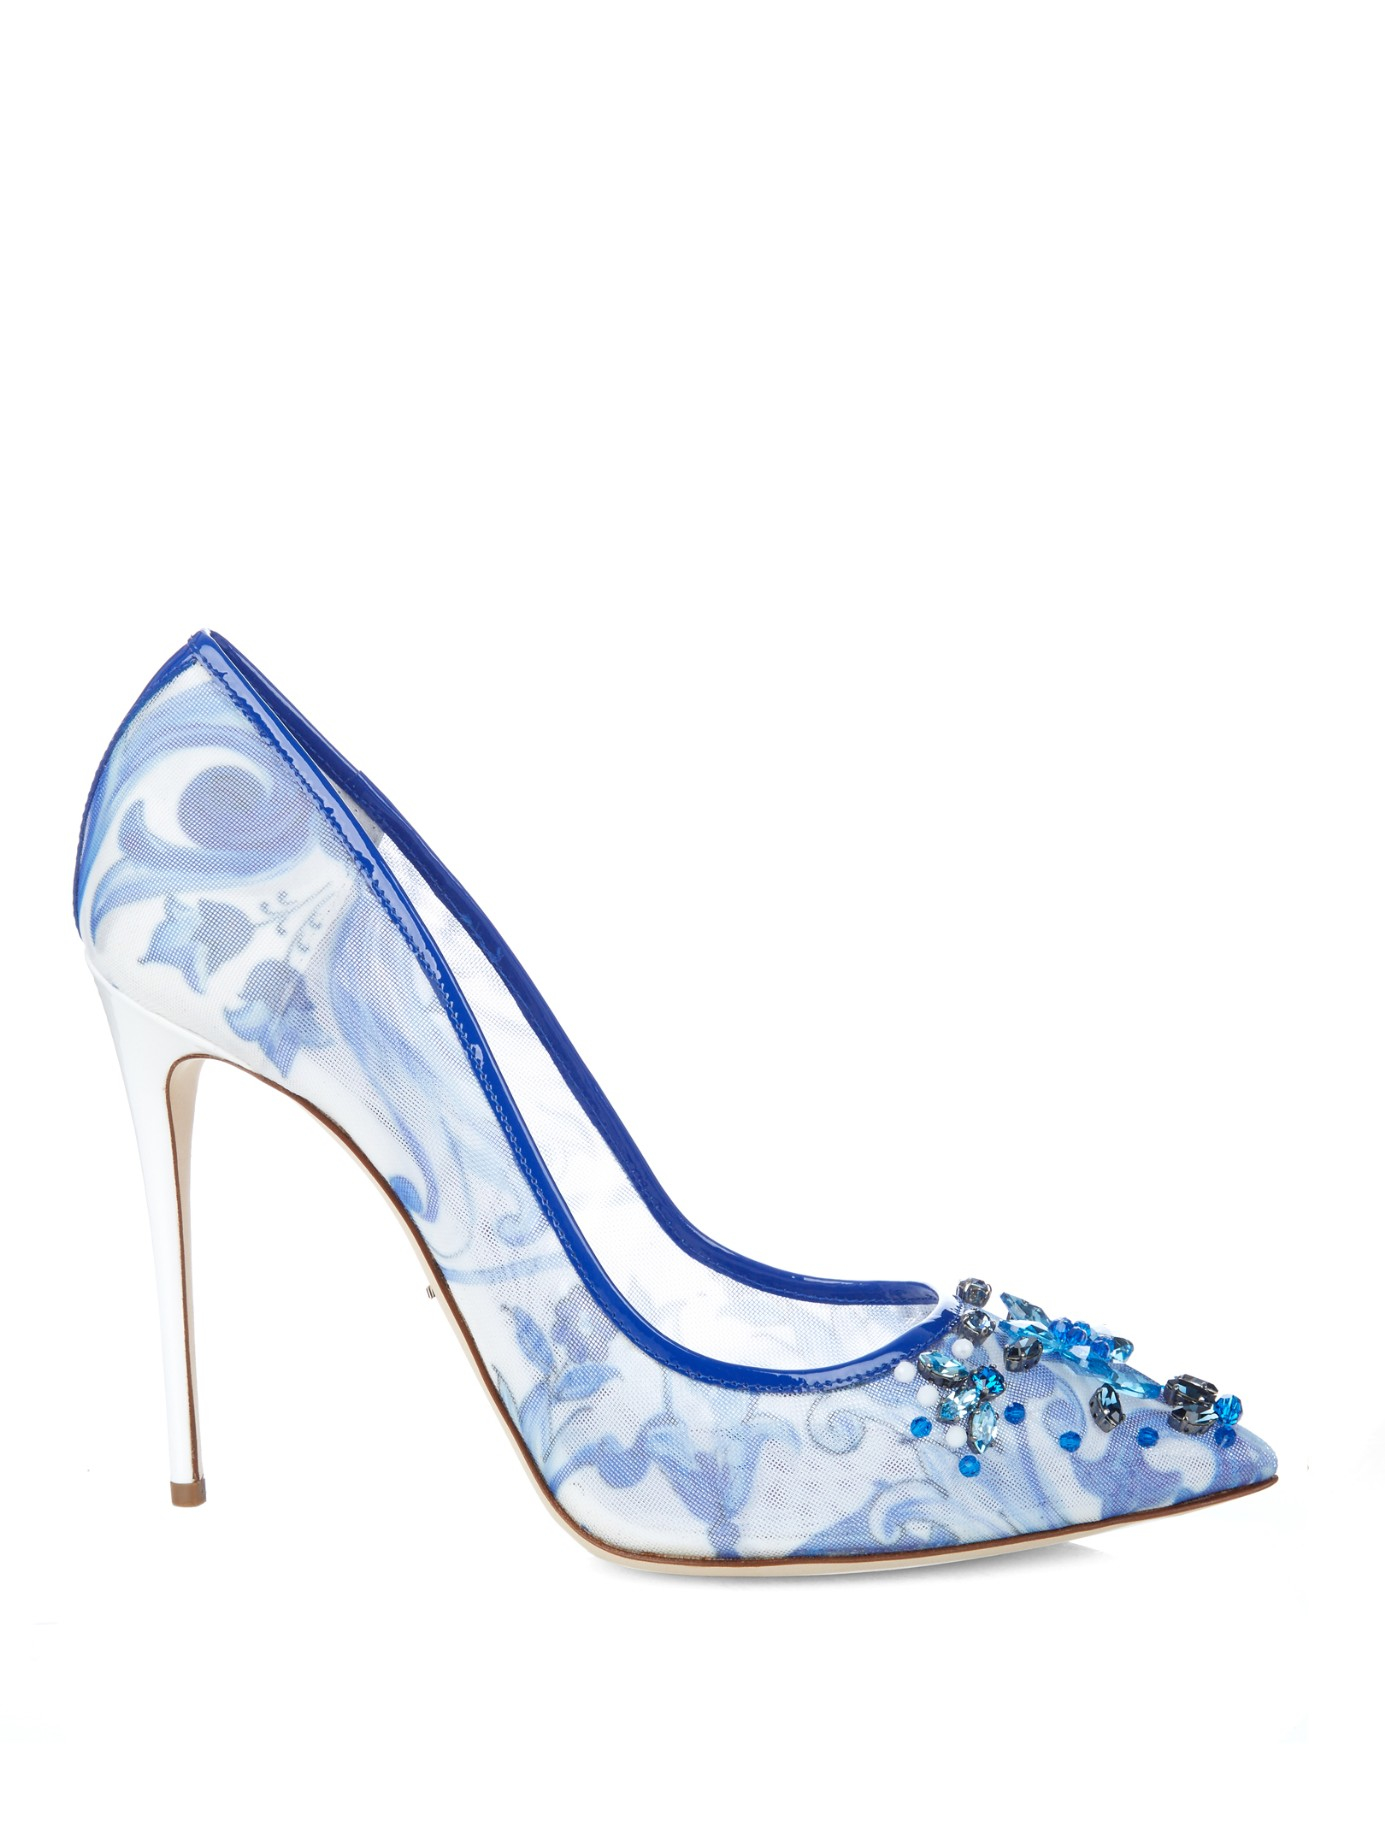 Dolce & Gabbana Floral Embellished Pumps pictures cheap price Manchester cheap online Rshk2isfk